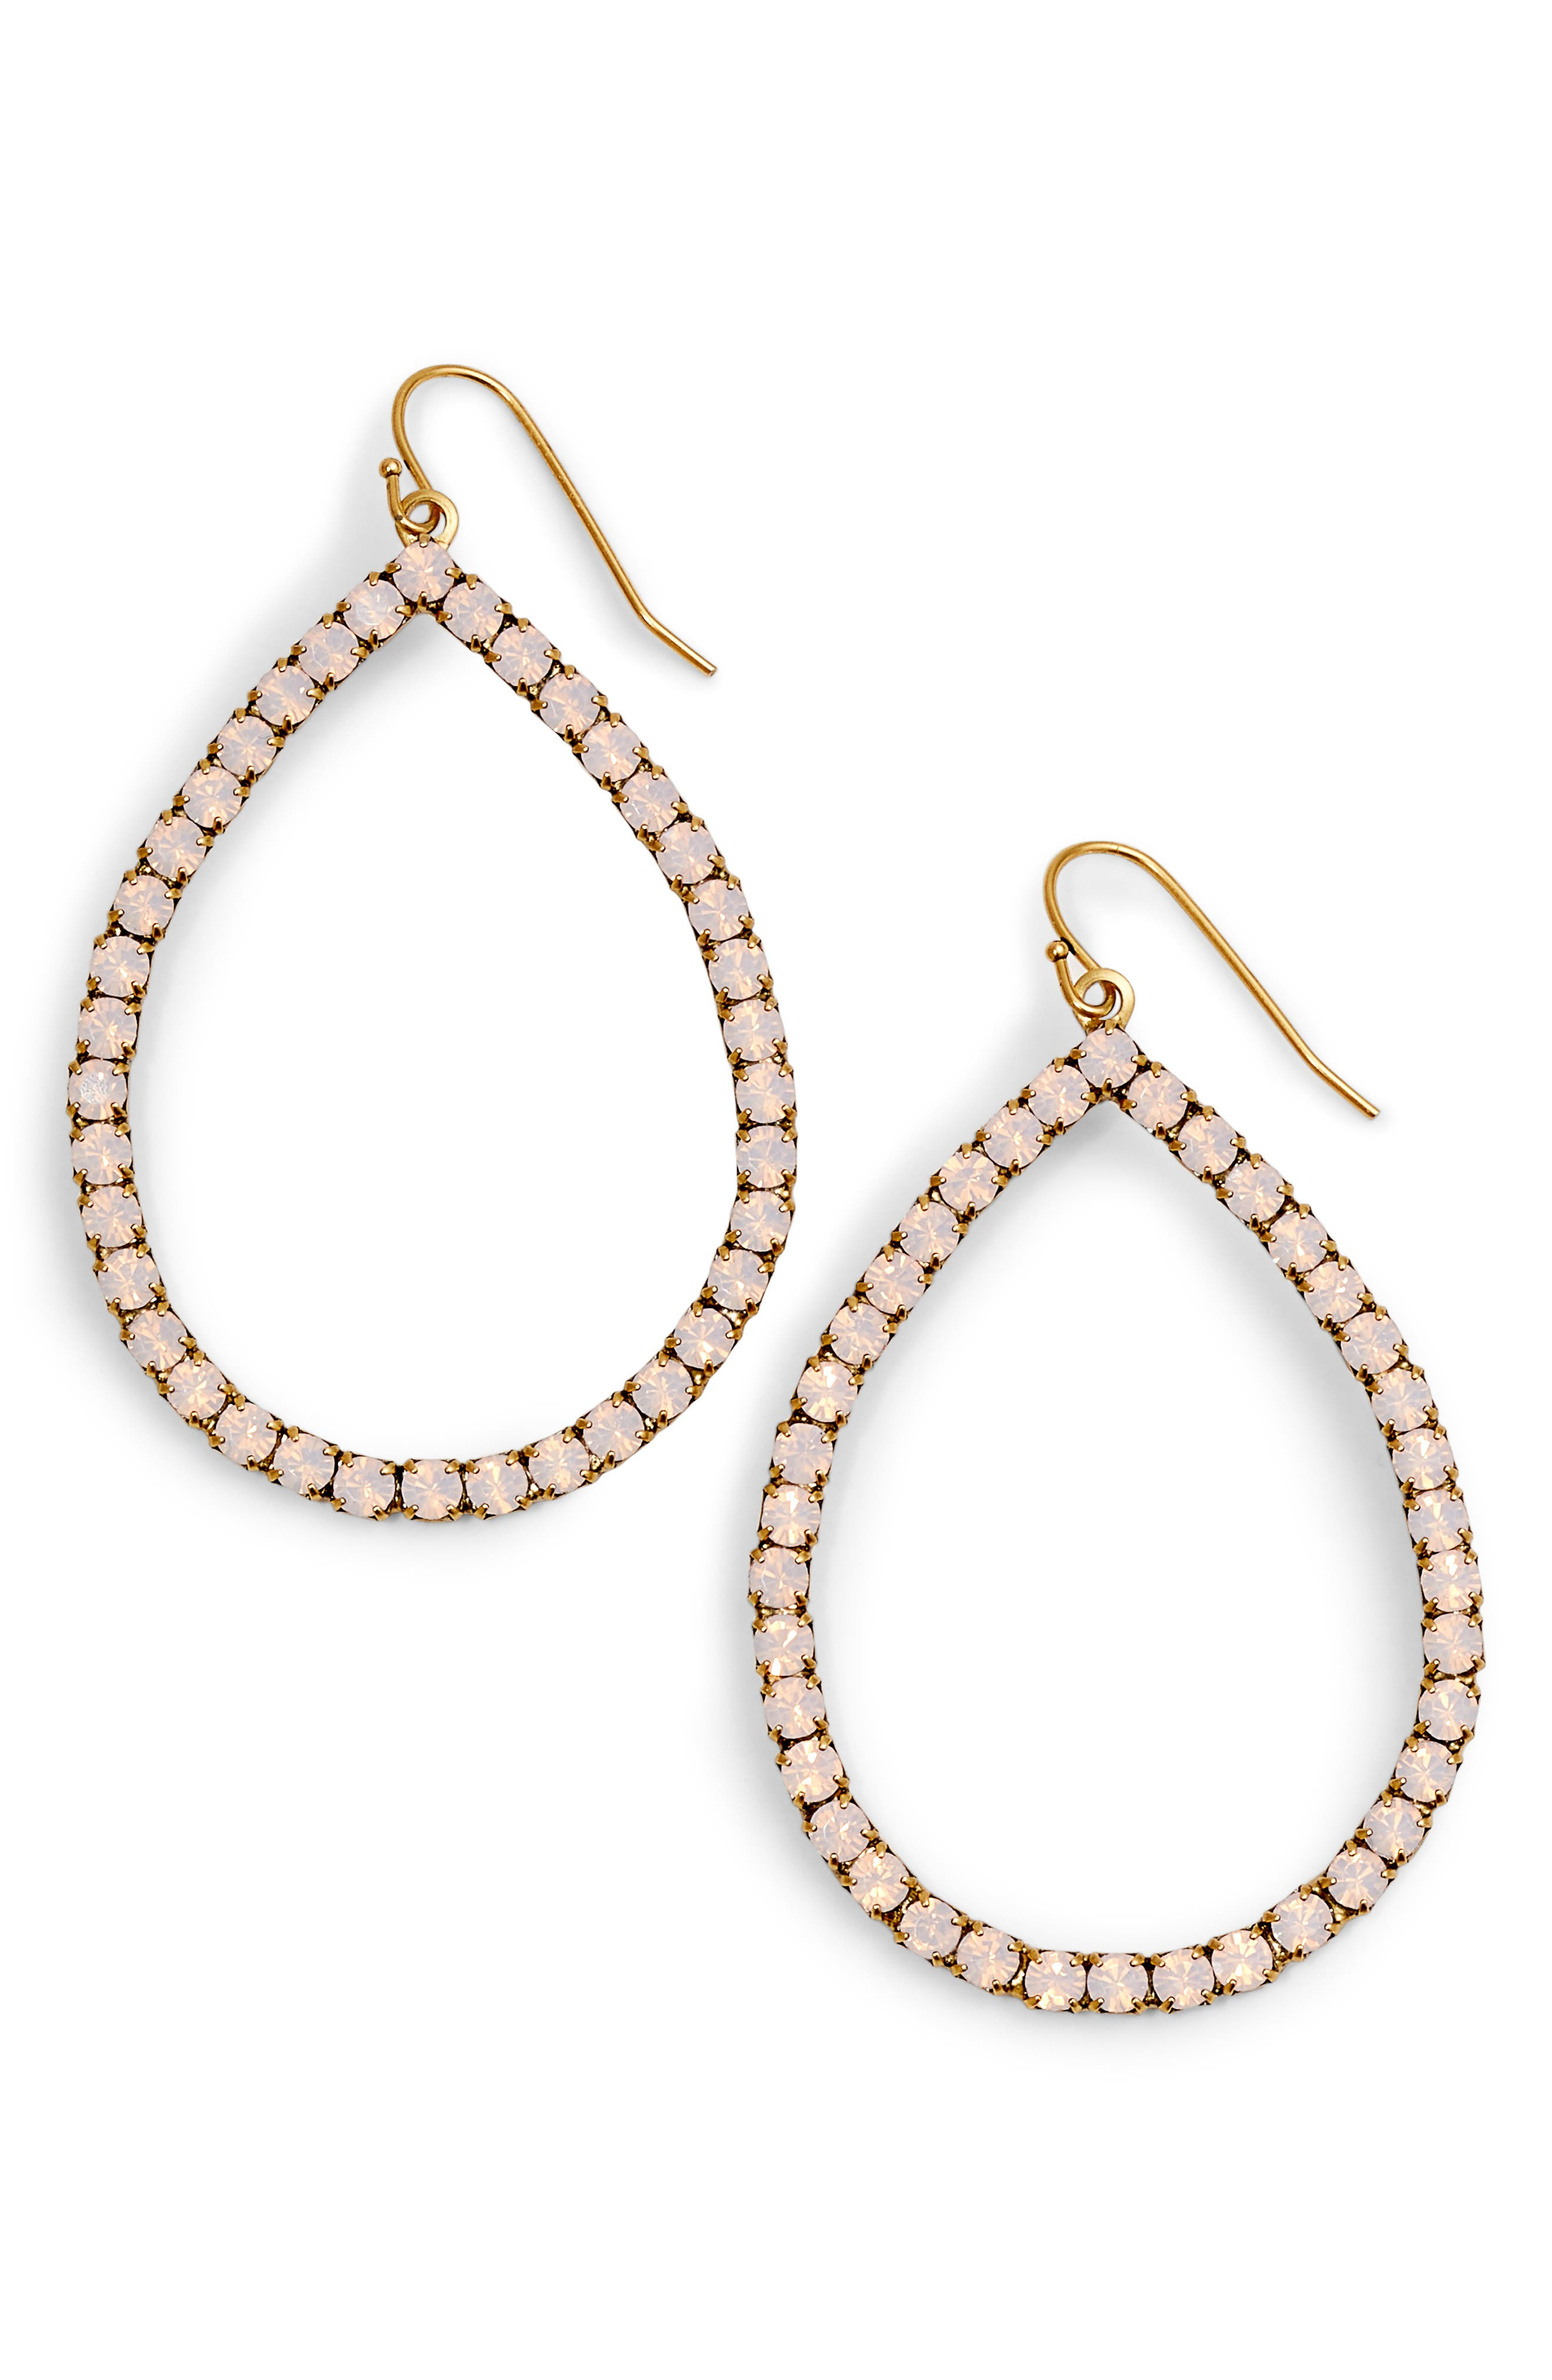 Loren Hope Emilia Crystal Teardrop Earrings